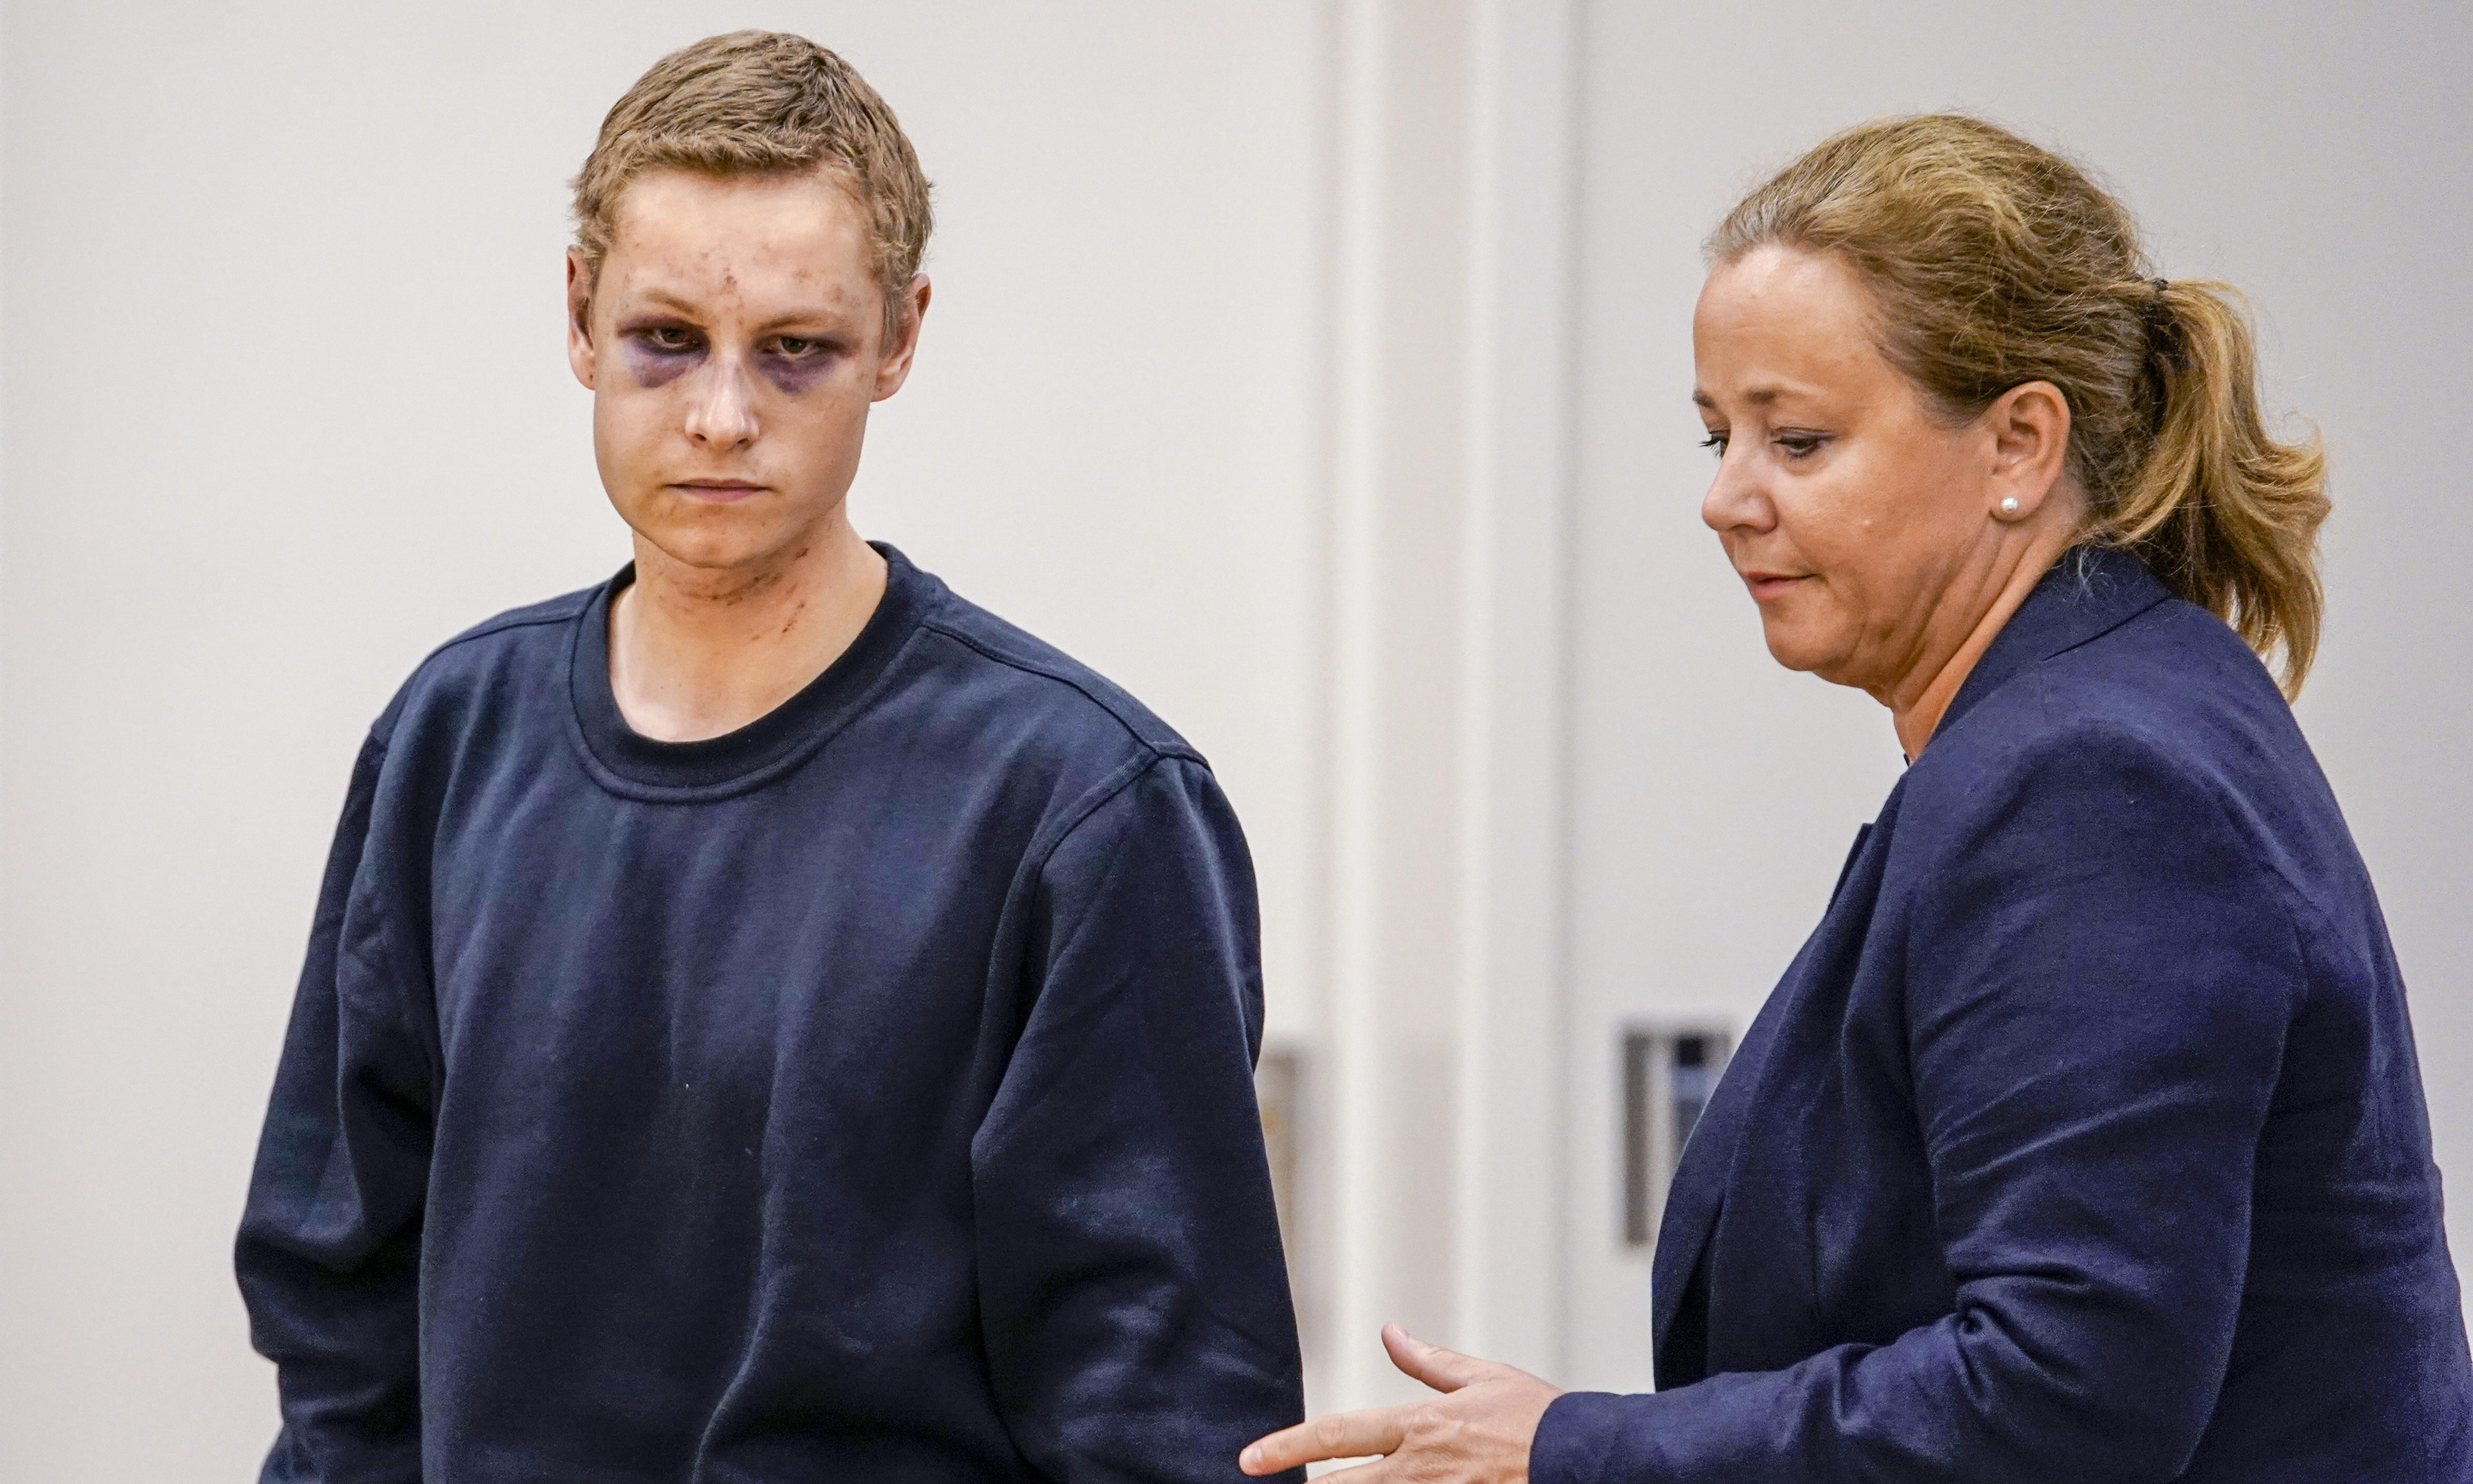 Norway mosque attack suspect appears in court